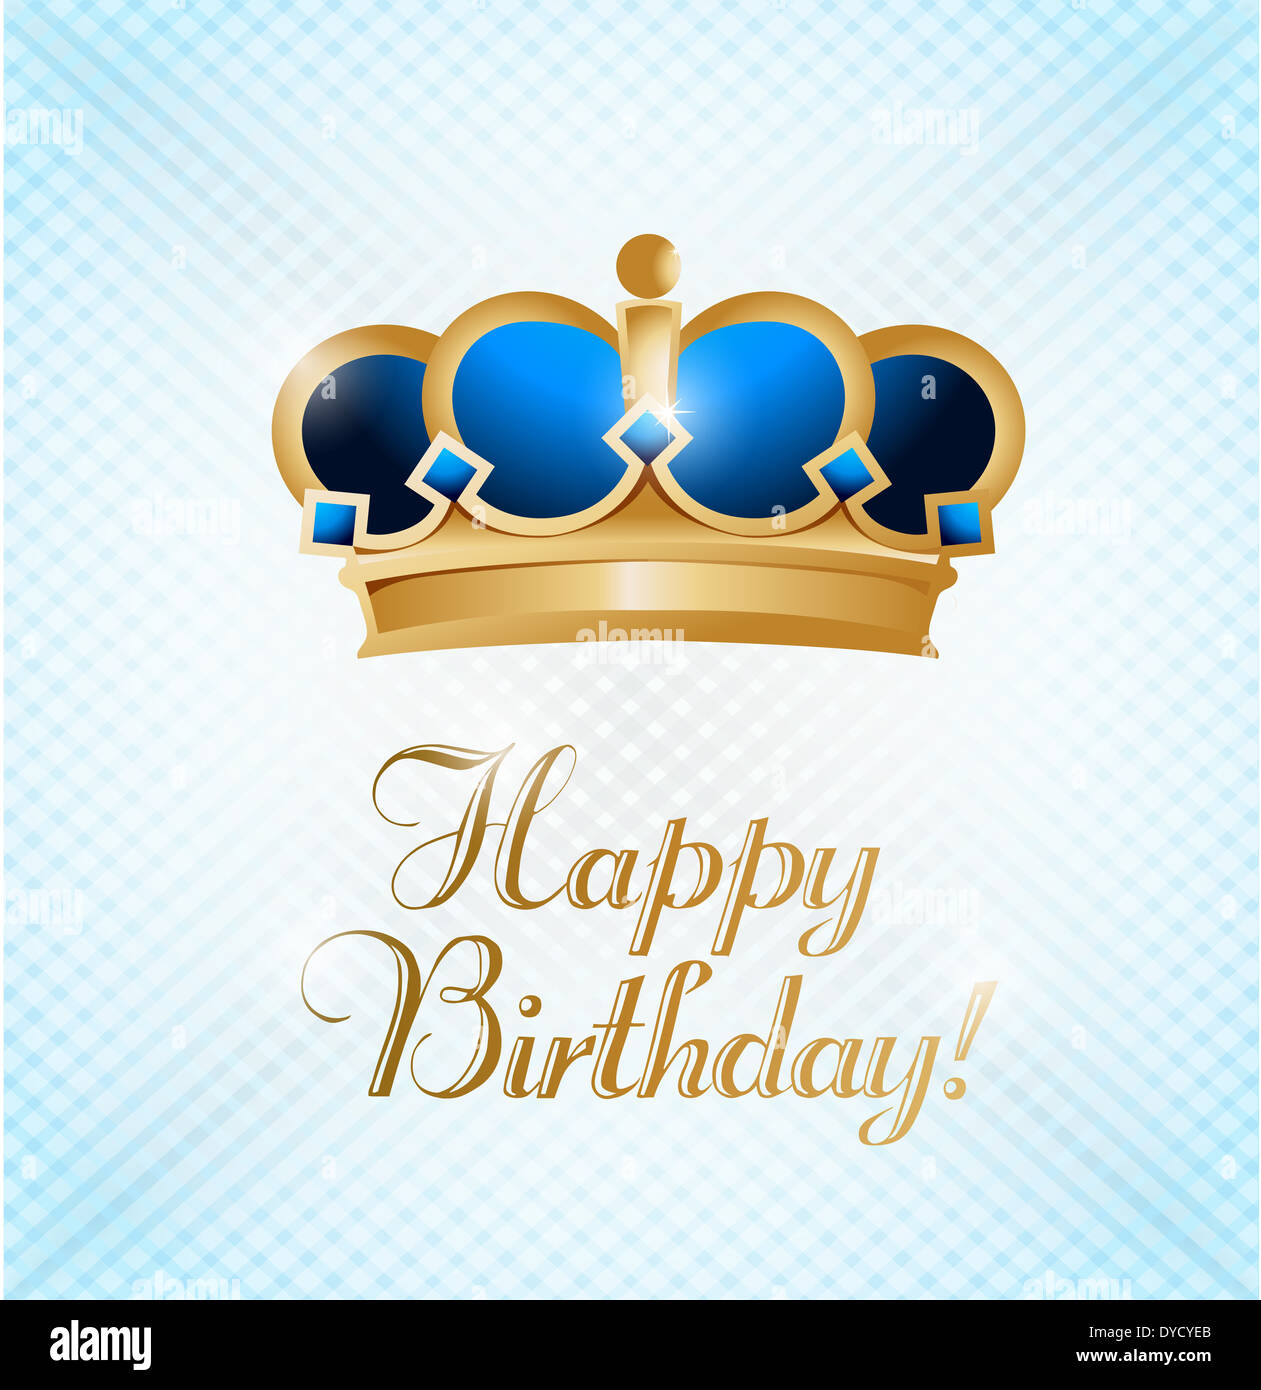 Happy Birthday King. Illustration Design Card Over A Light